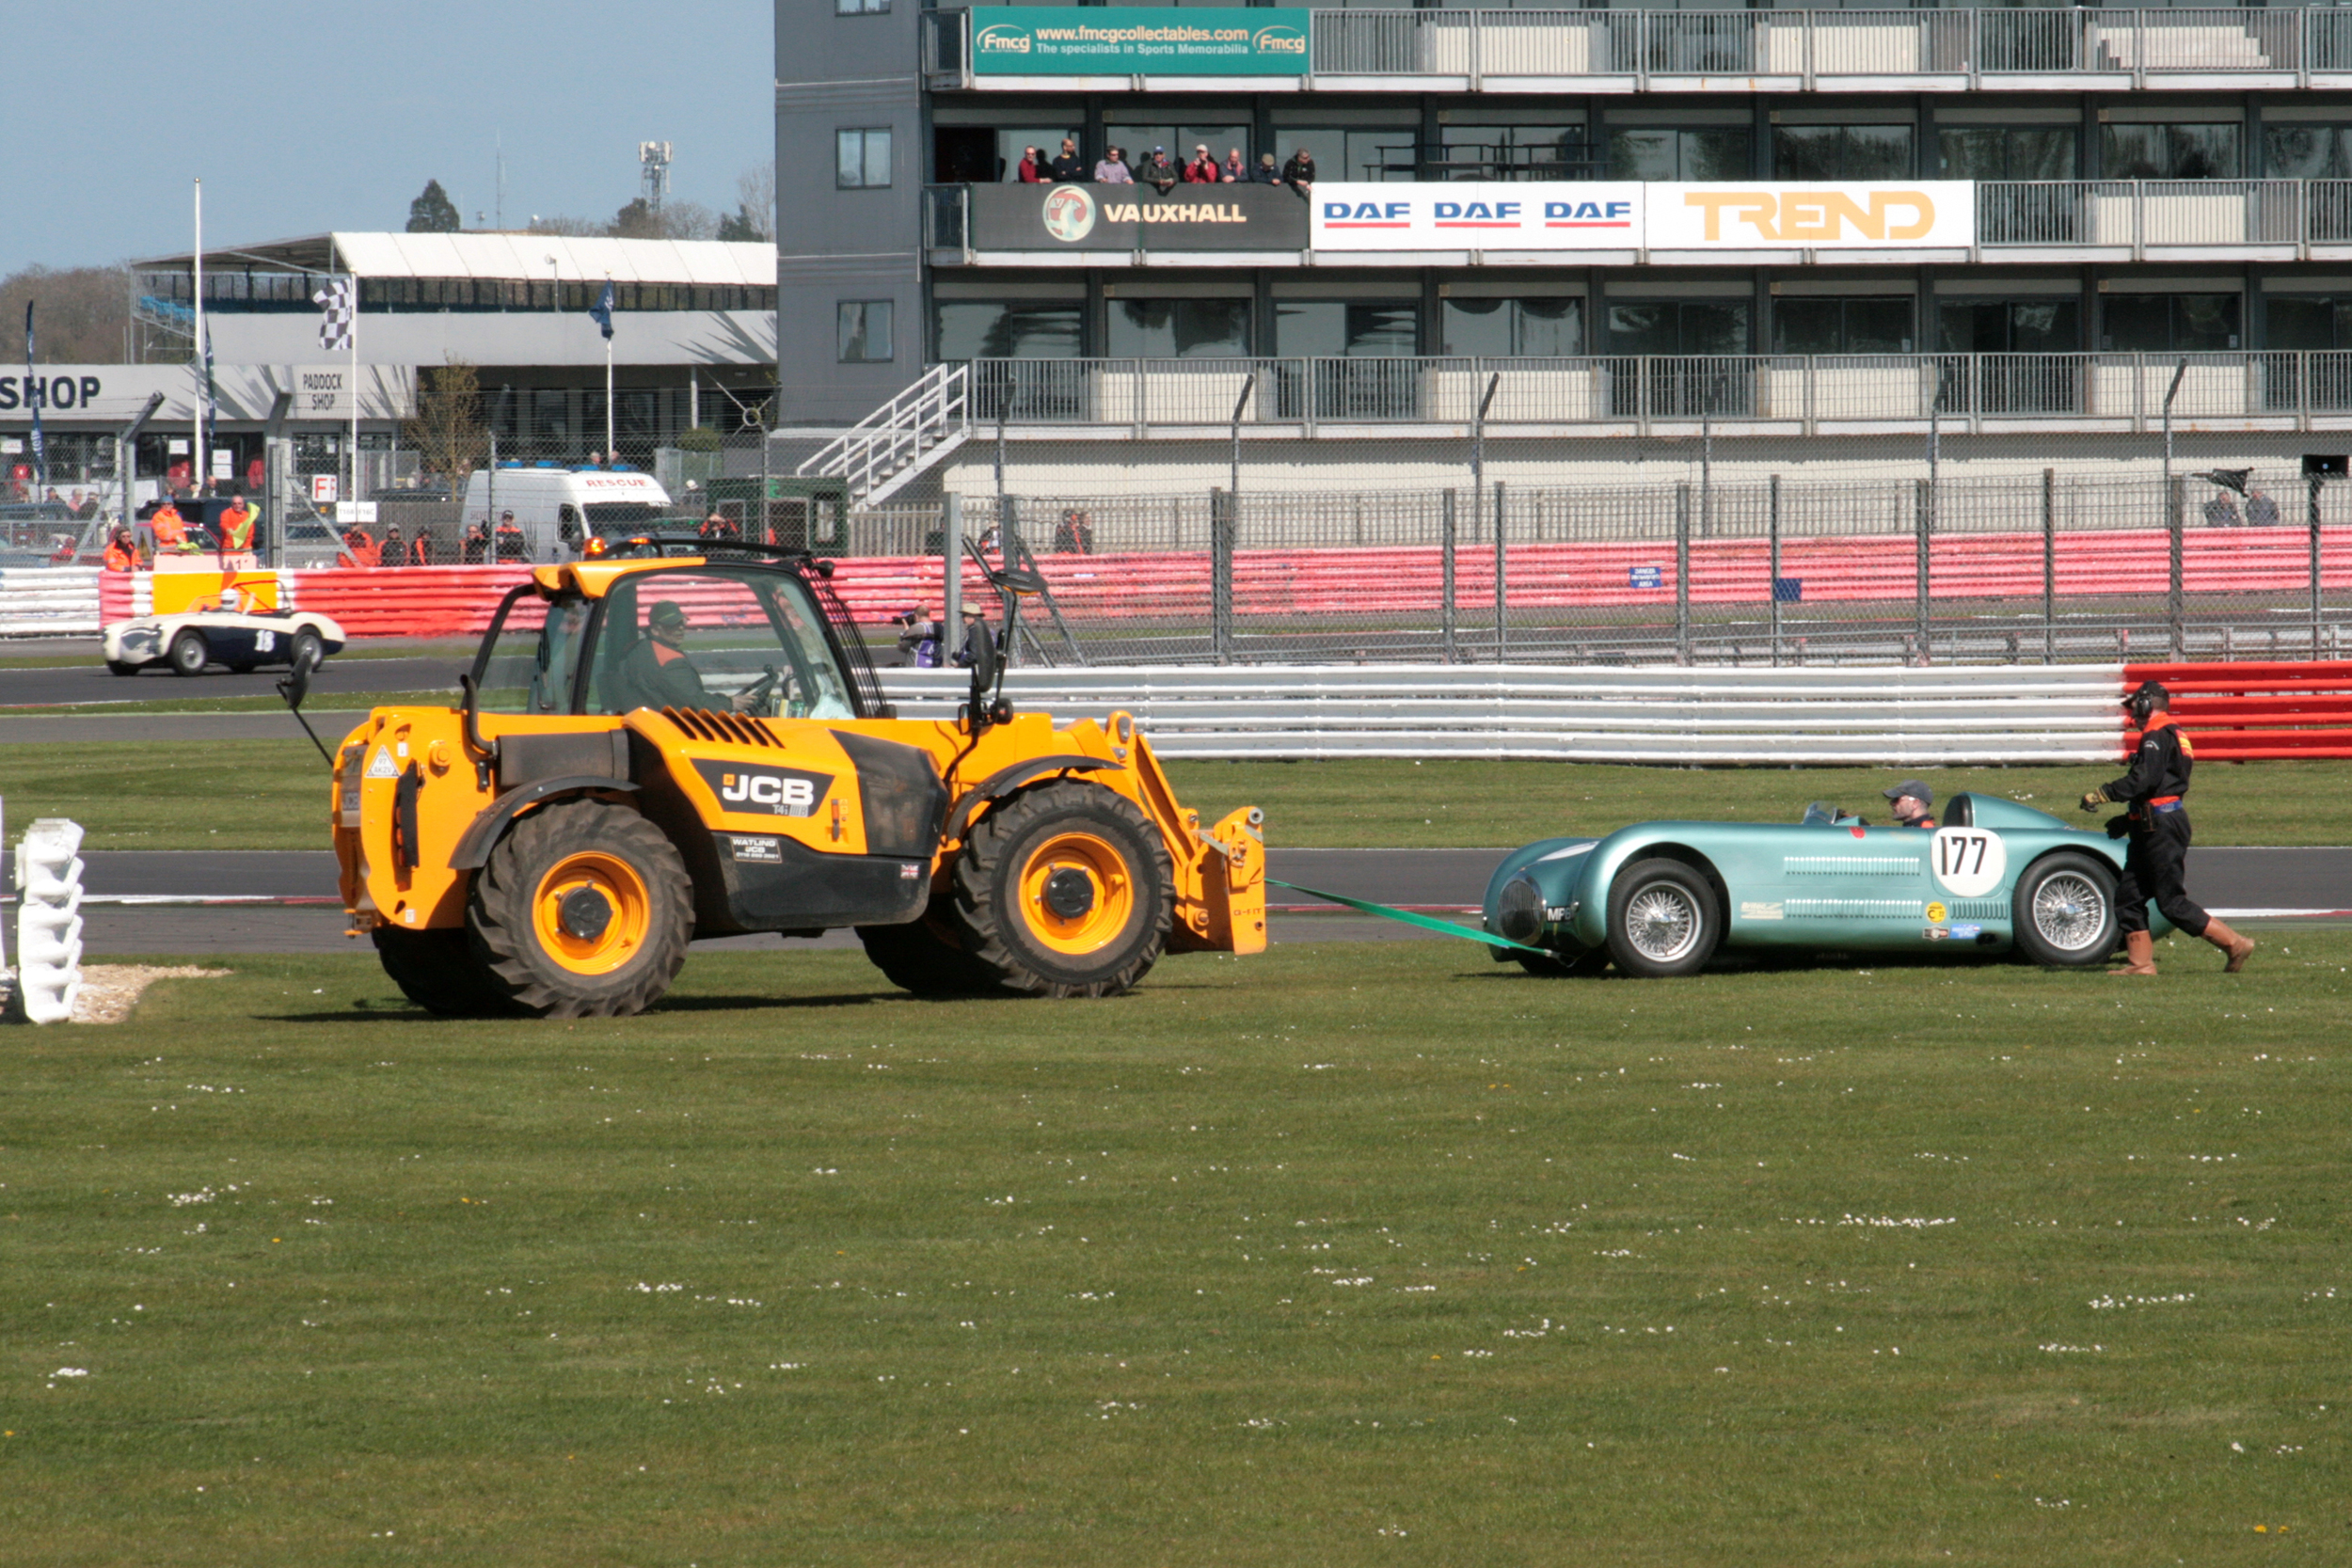 The usual splendid job done by the marshals - The unique stReamliner gets towed to safety      Photo - John Turner